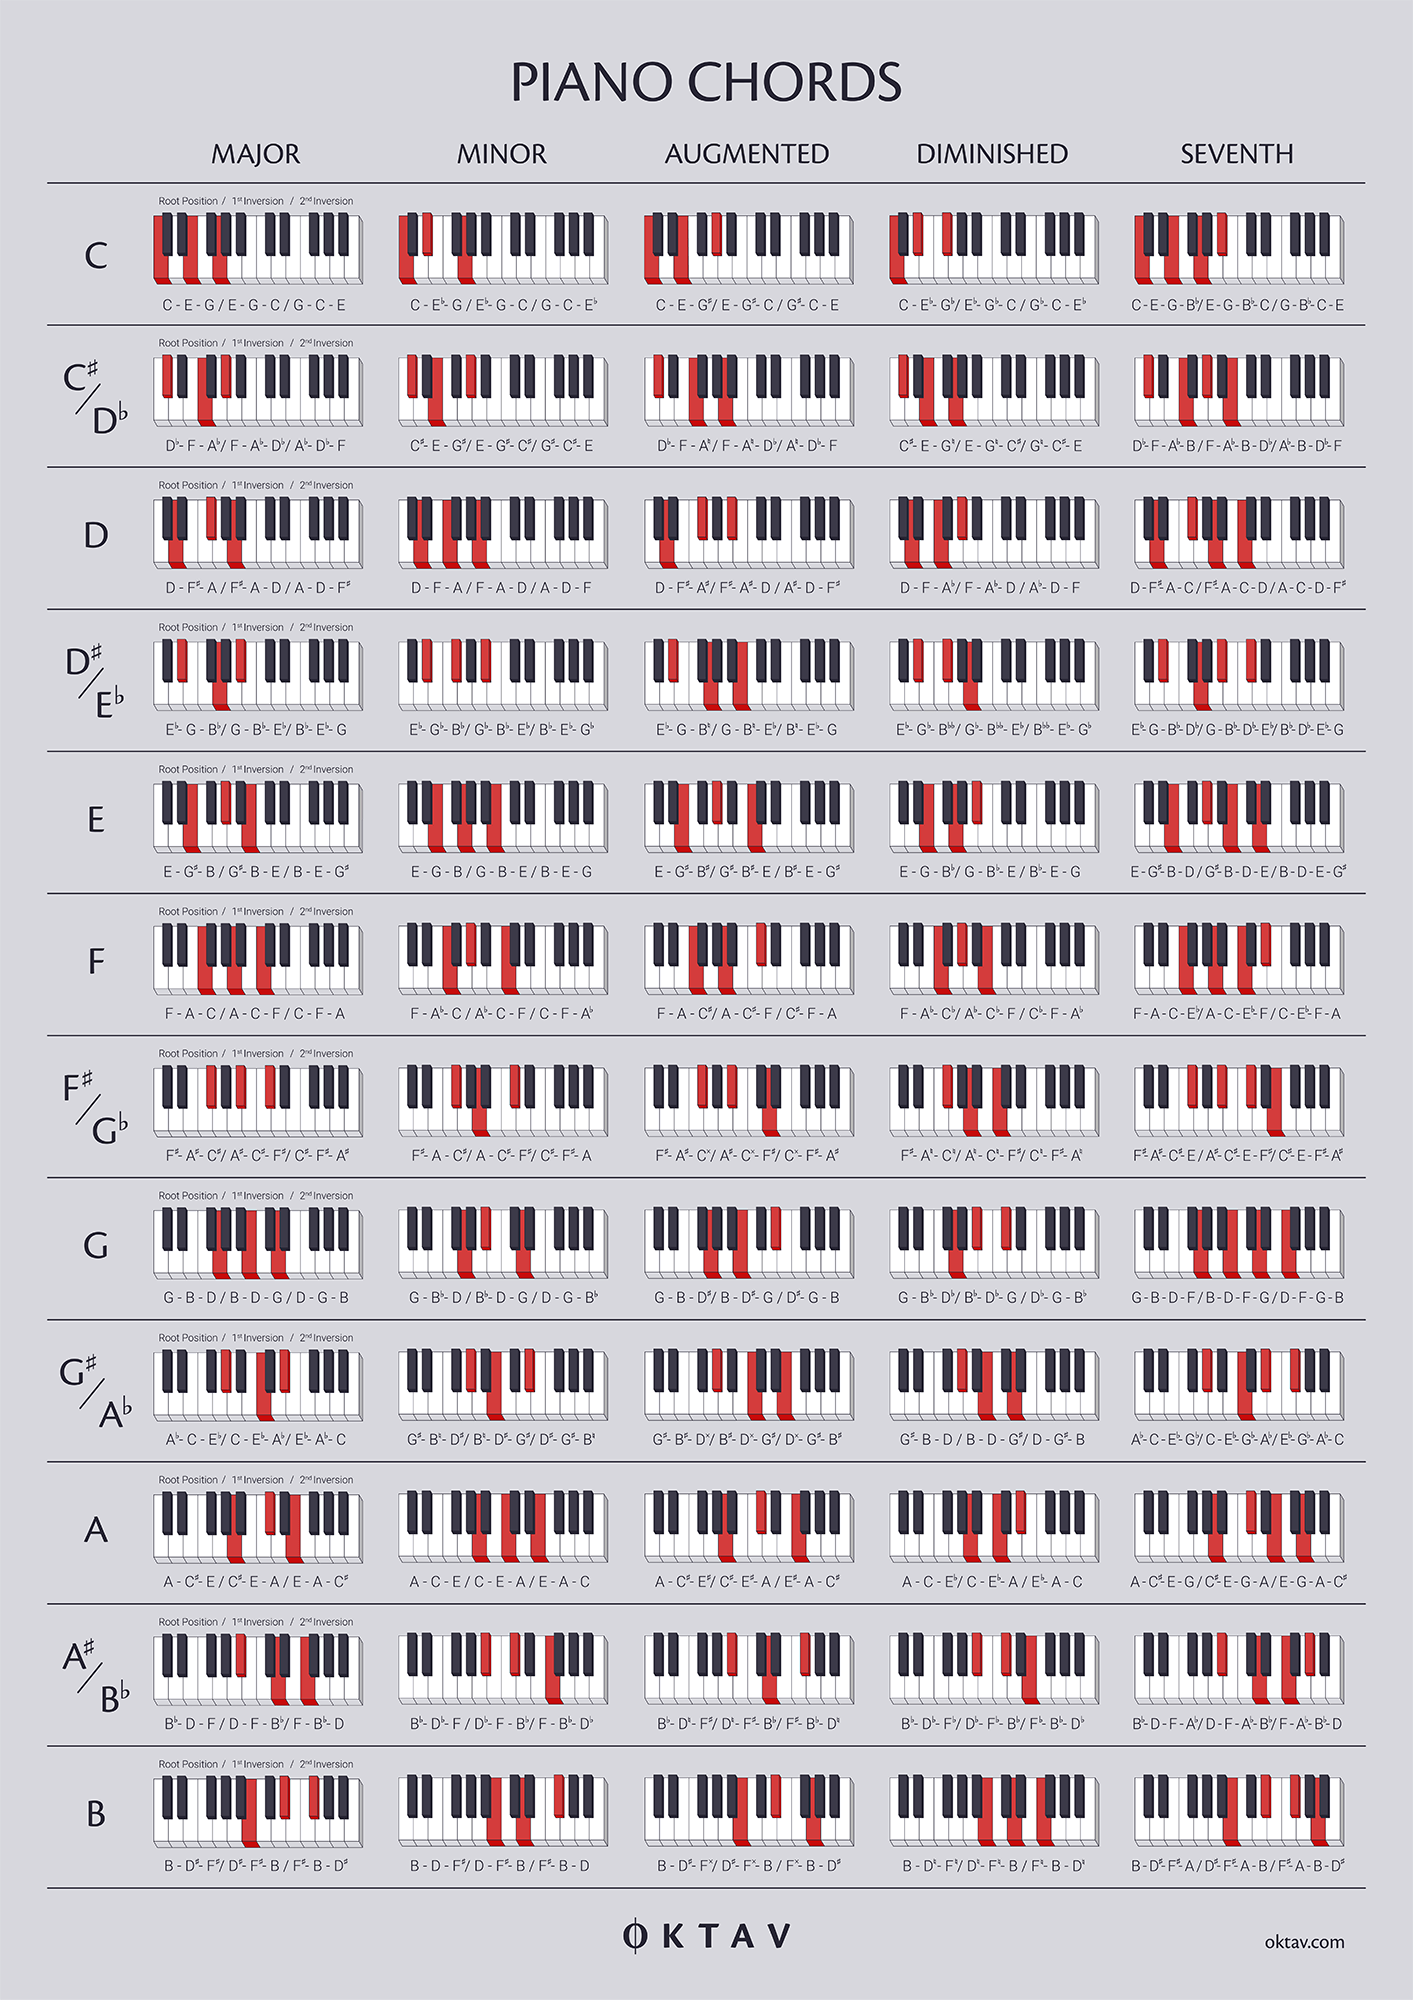 The Ultimate Chord Guide for Piano Players   OKTAV